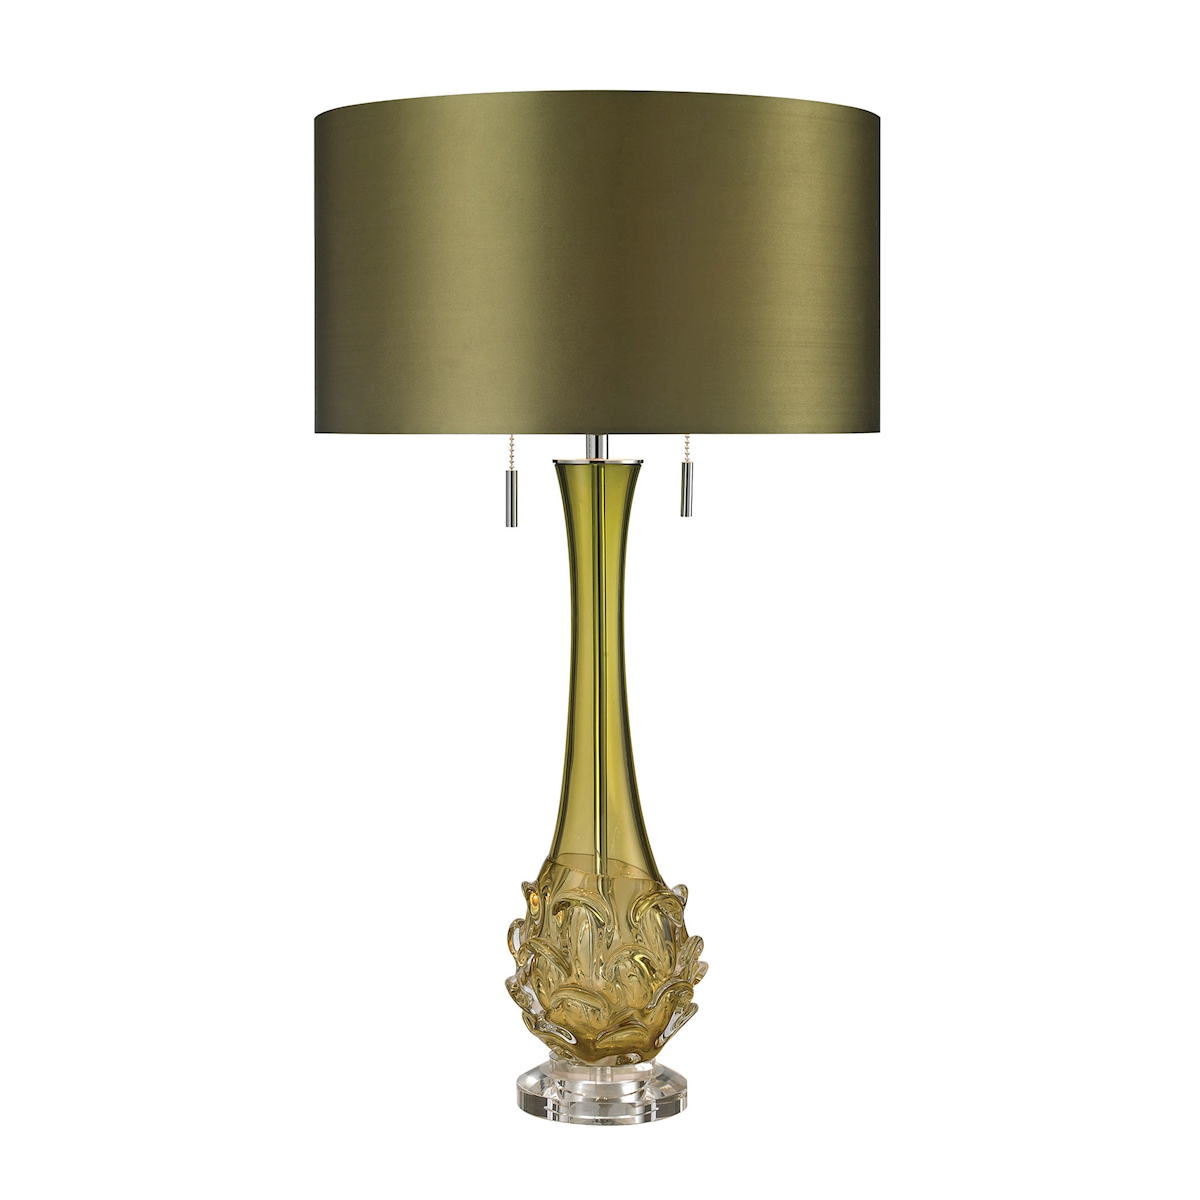 Dimond Vignola 28 Blown Glass Table Lamp in Green w/Shade